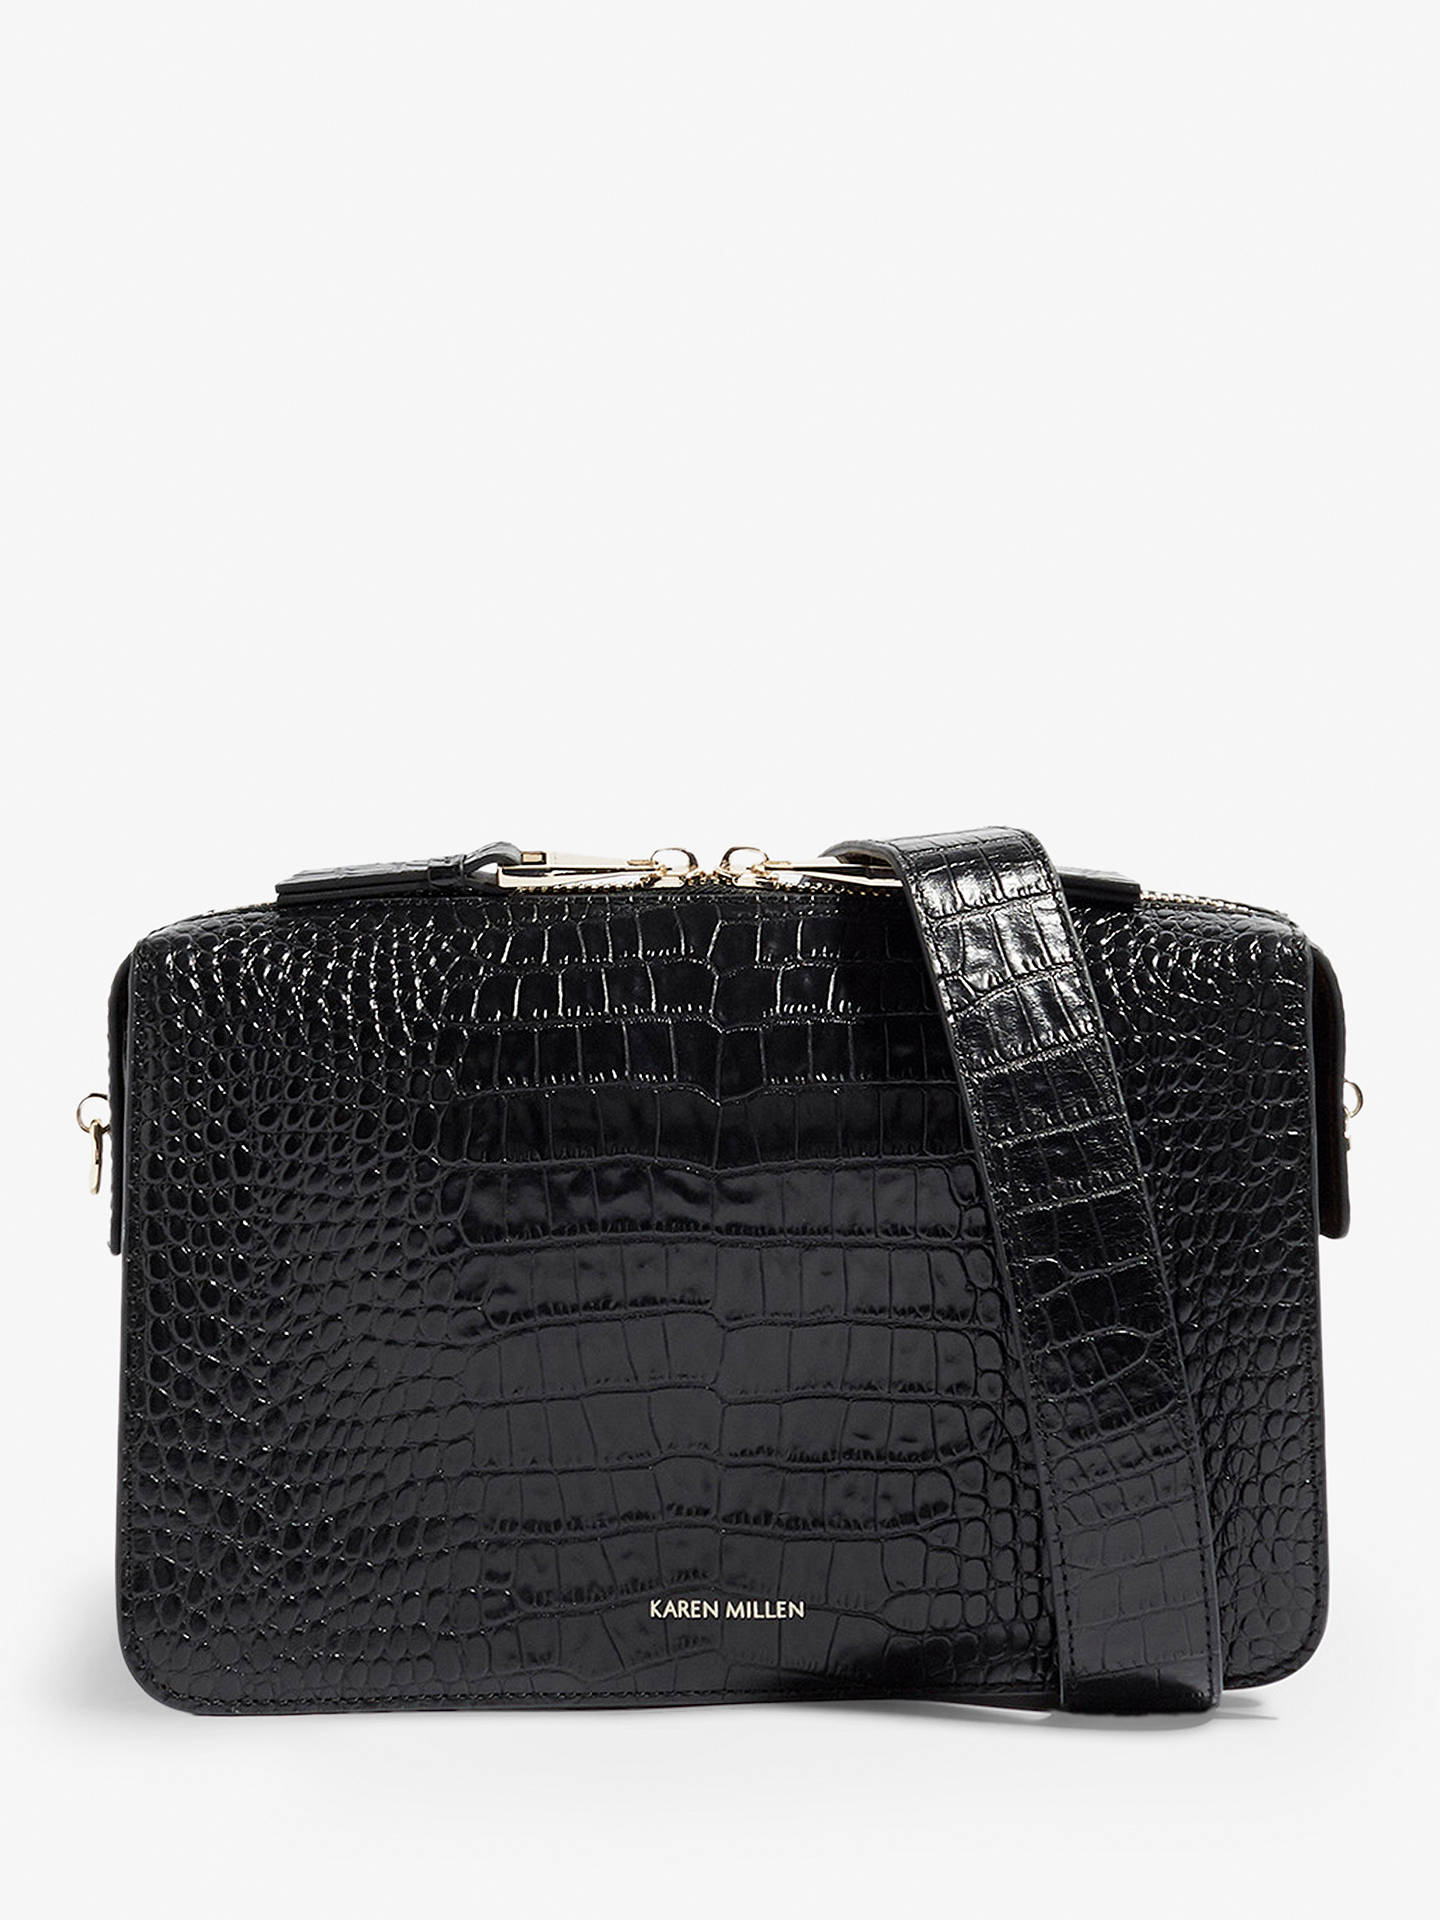 cb09b1b25ca Buy Karen Millen Croc Leather Shoulder Bag, Black Online at johnlewis.com  ...